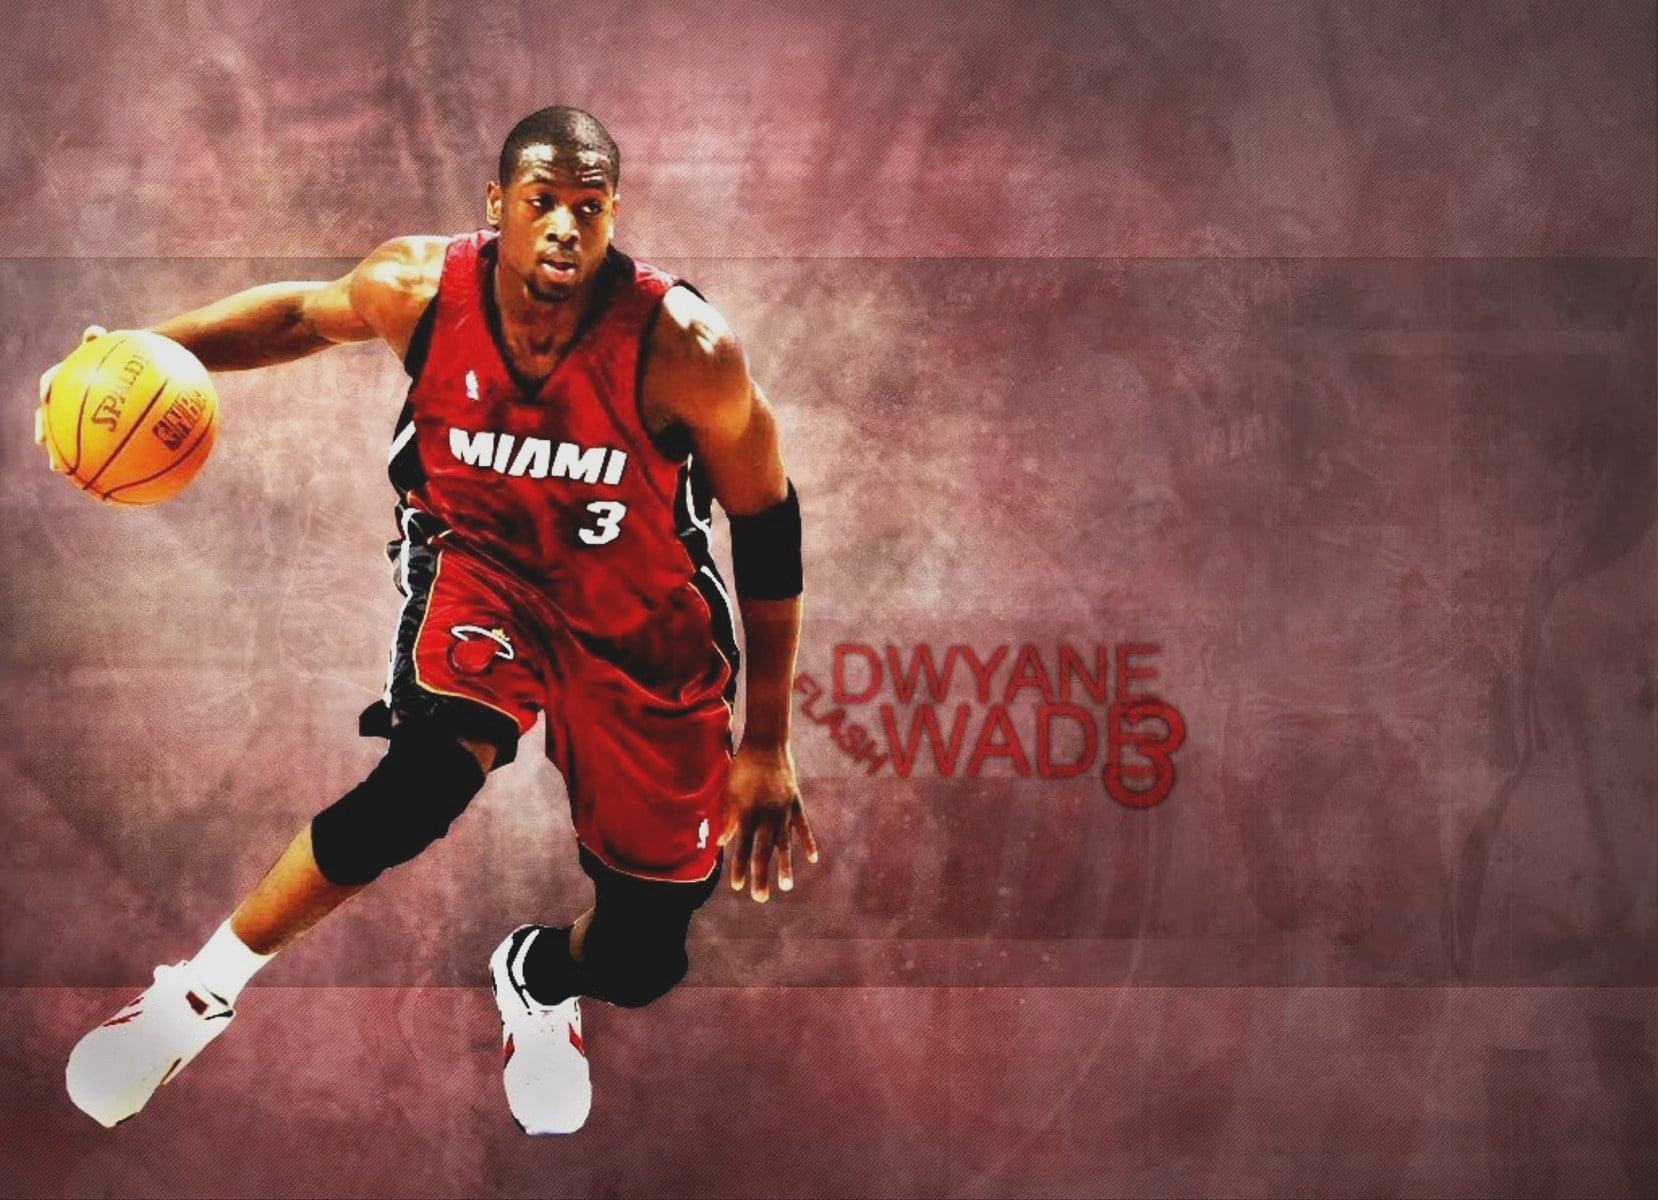 Best Hd Quotes Wallpapers For Mobile Hd Dwyane Wade Wallpapers Pixelstalk Net